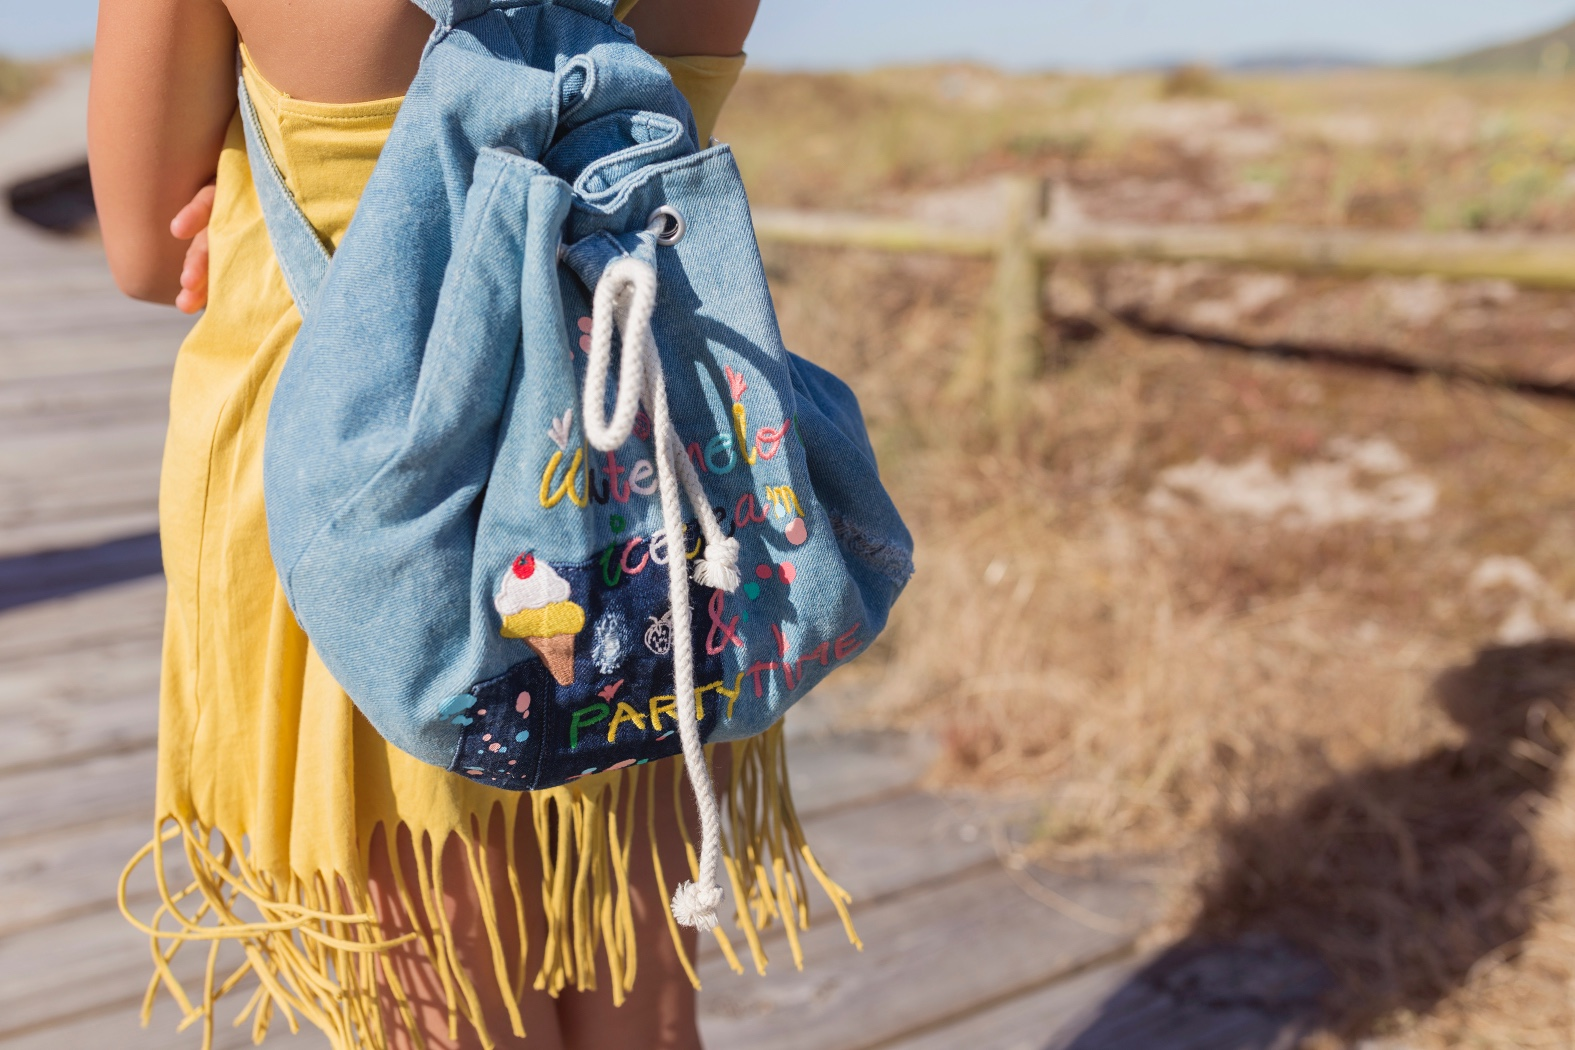 backpack-barrañán -coruña - descalzaporelparque - jimena -kids - playa - pull and bear - rayban -rojo -summer - zara kids-surf-playa-barrañan-arteixo